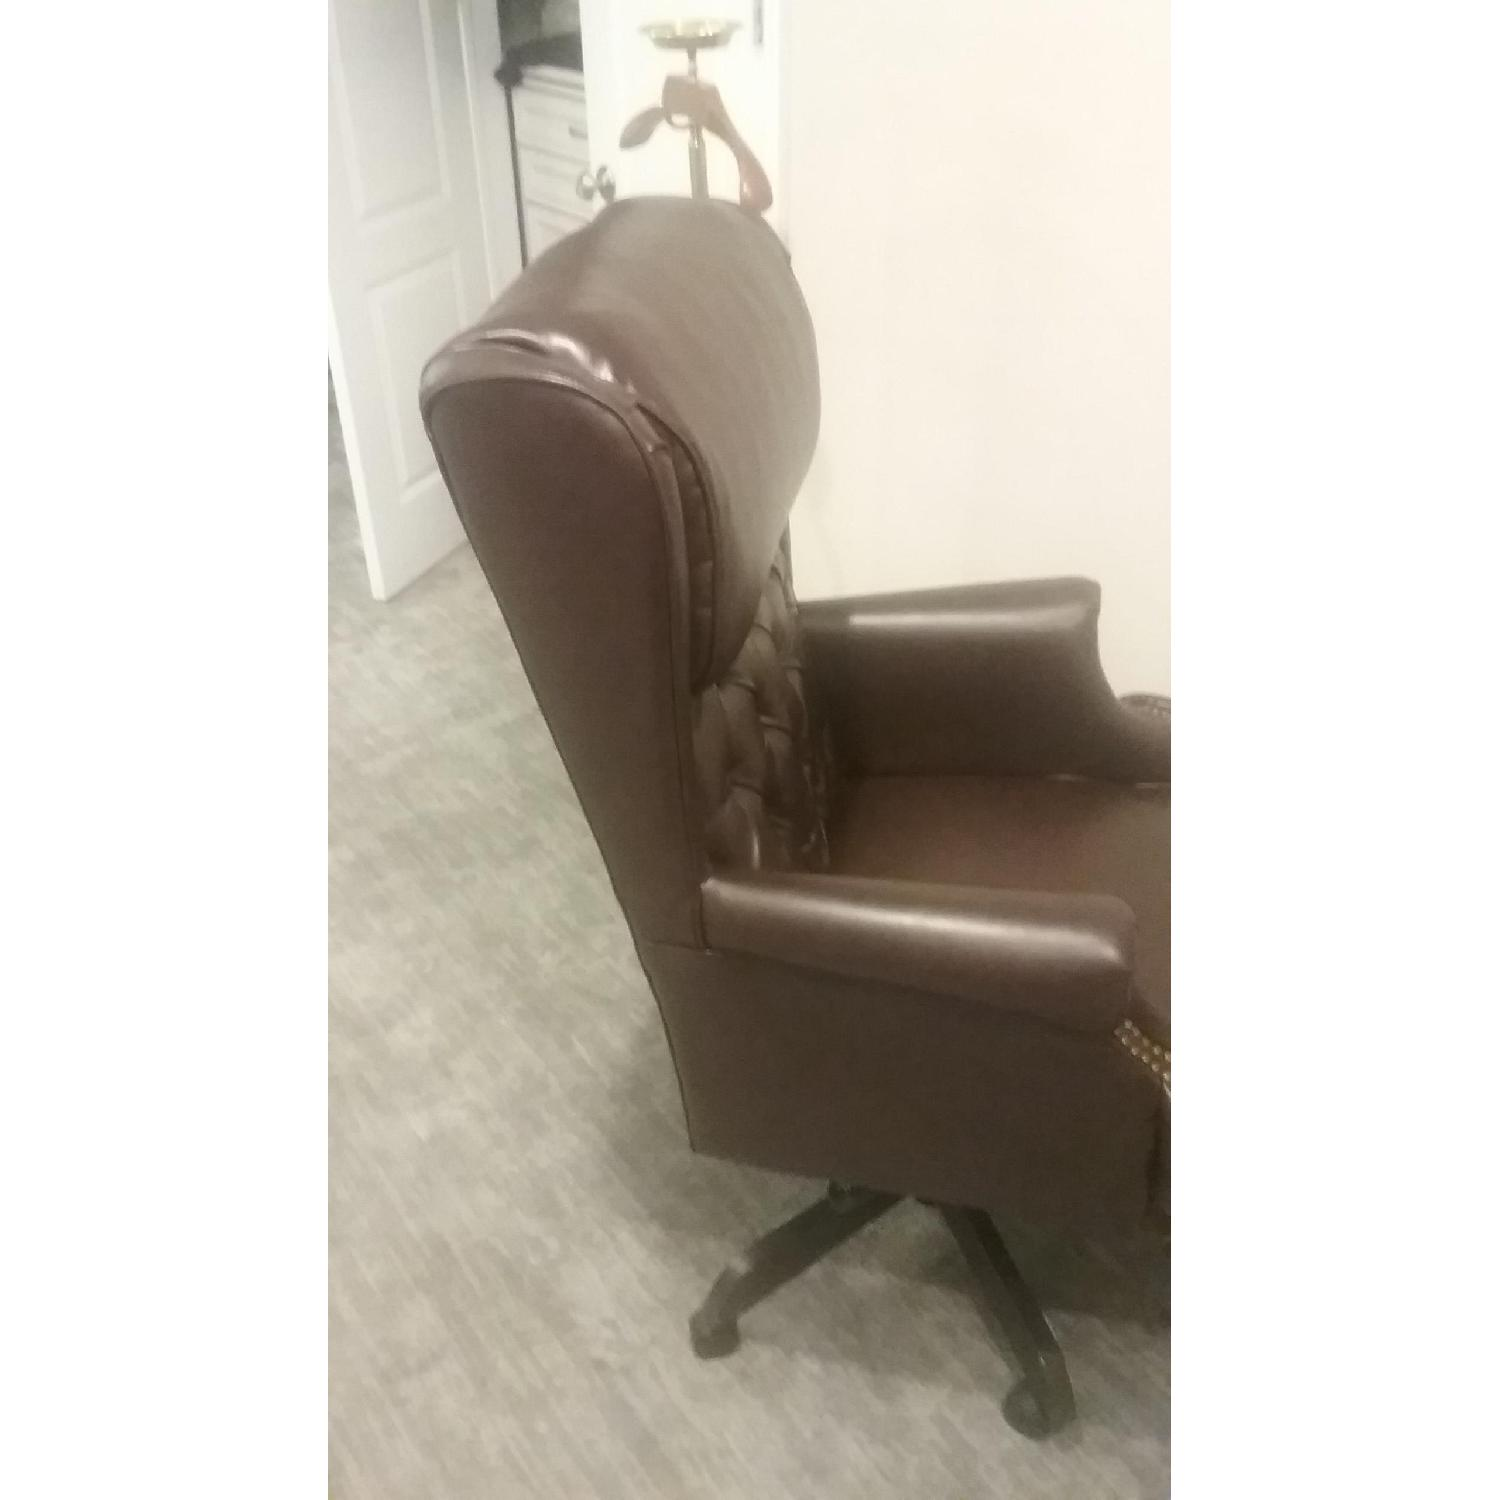 Darby Home Co. Executive Chair-1